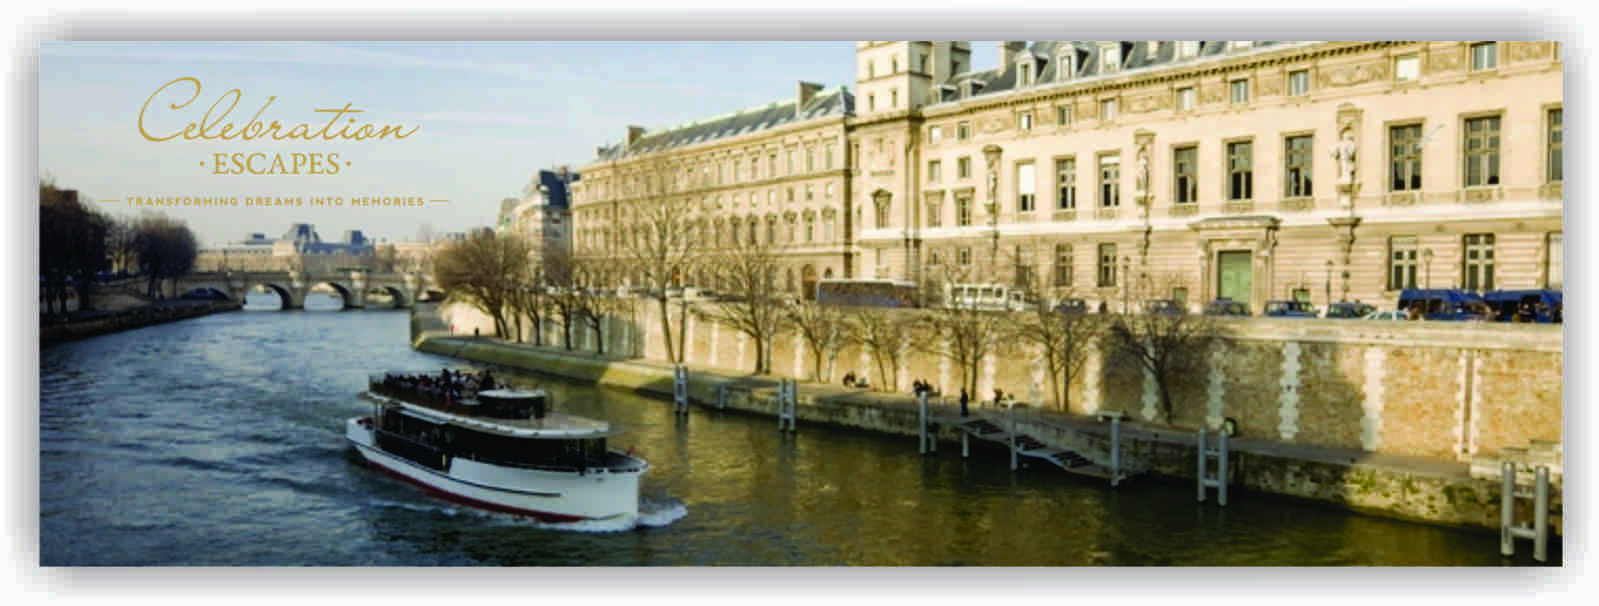 paris-header-ce-1600x